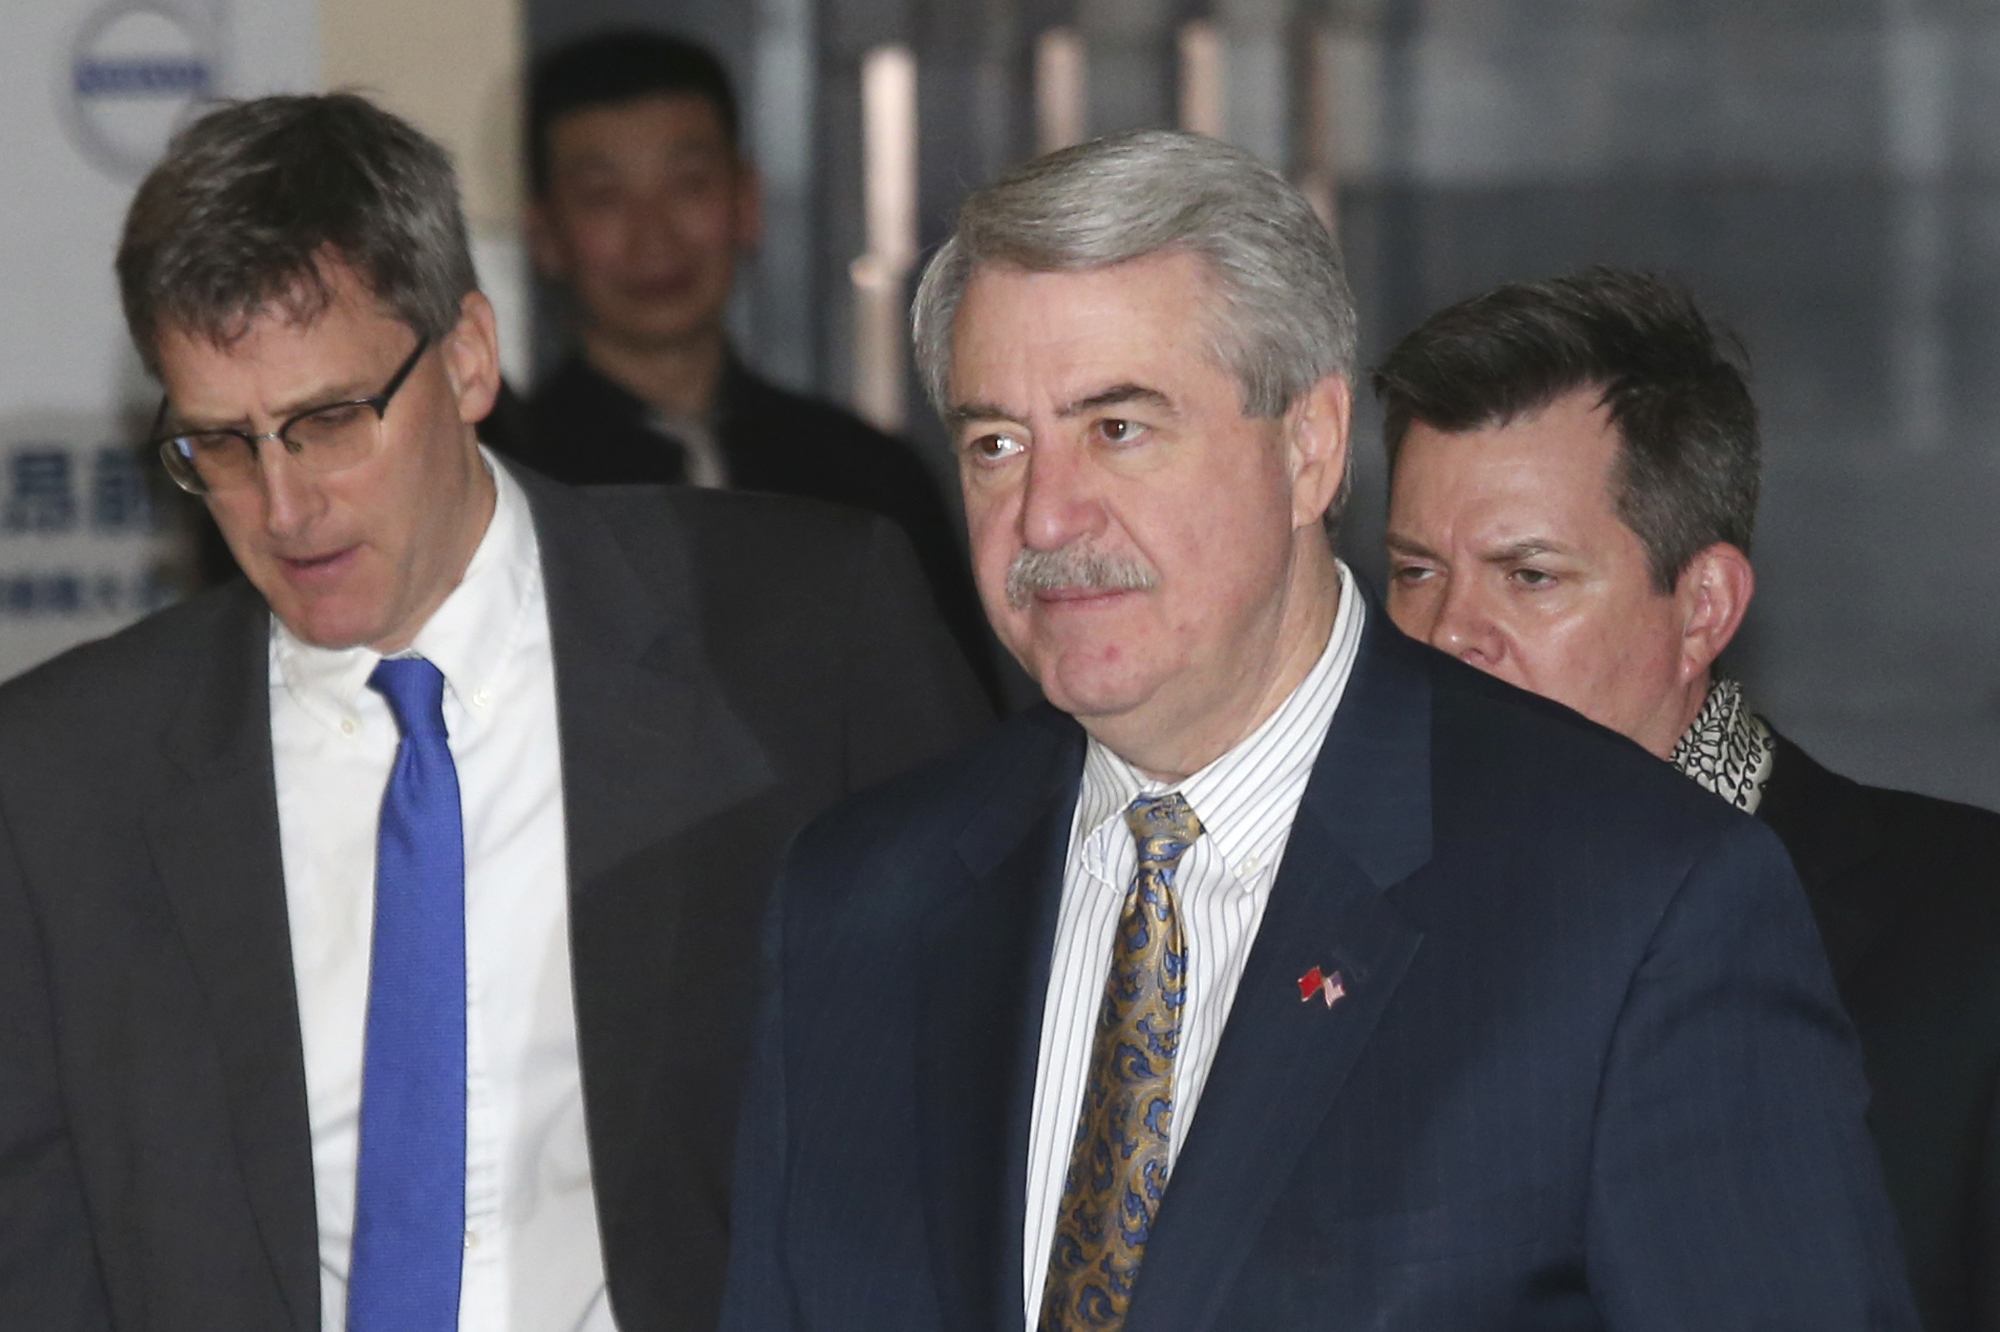 U.S. Undersecretary for Trade and Foreign Agricultural Affairs Ted McKinney, center, who is part of U.S. trade delegation leaves from a hotel for a second day of meetings with Chinese officials in Beijing, China, Jan. 8, 2019.